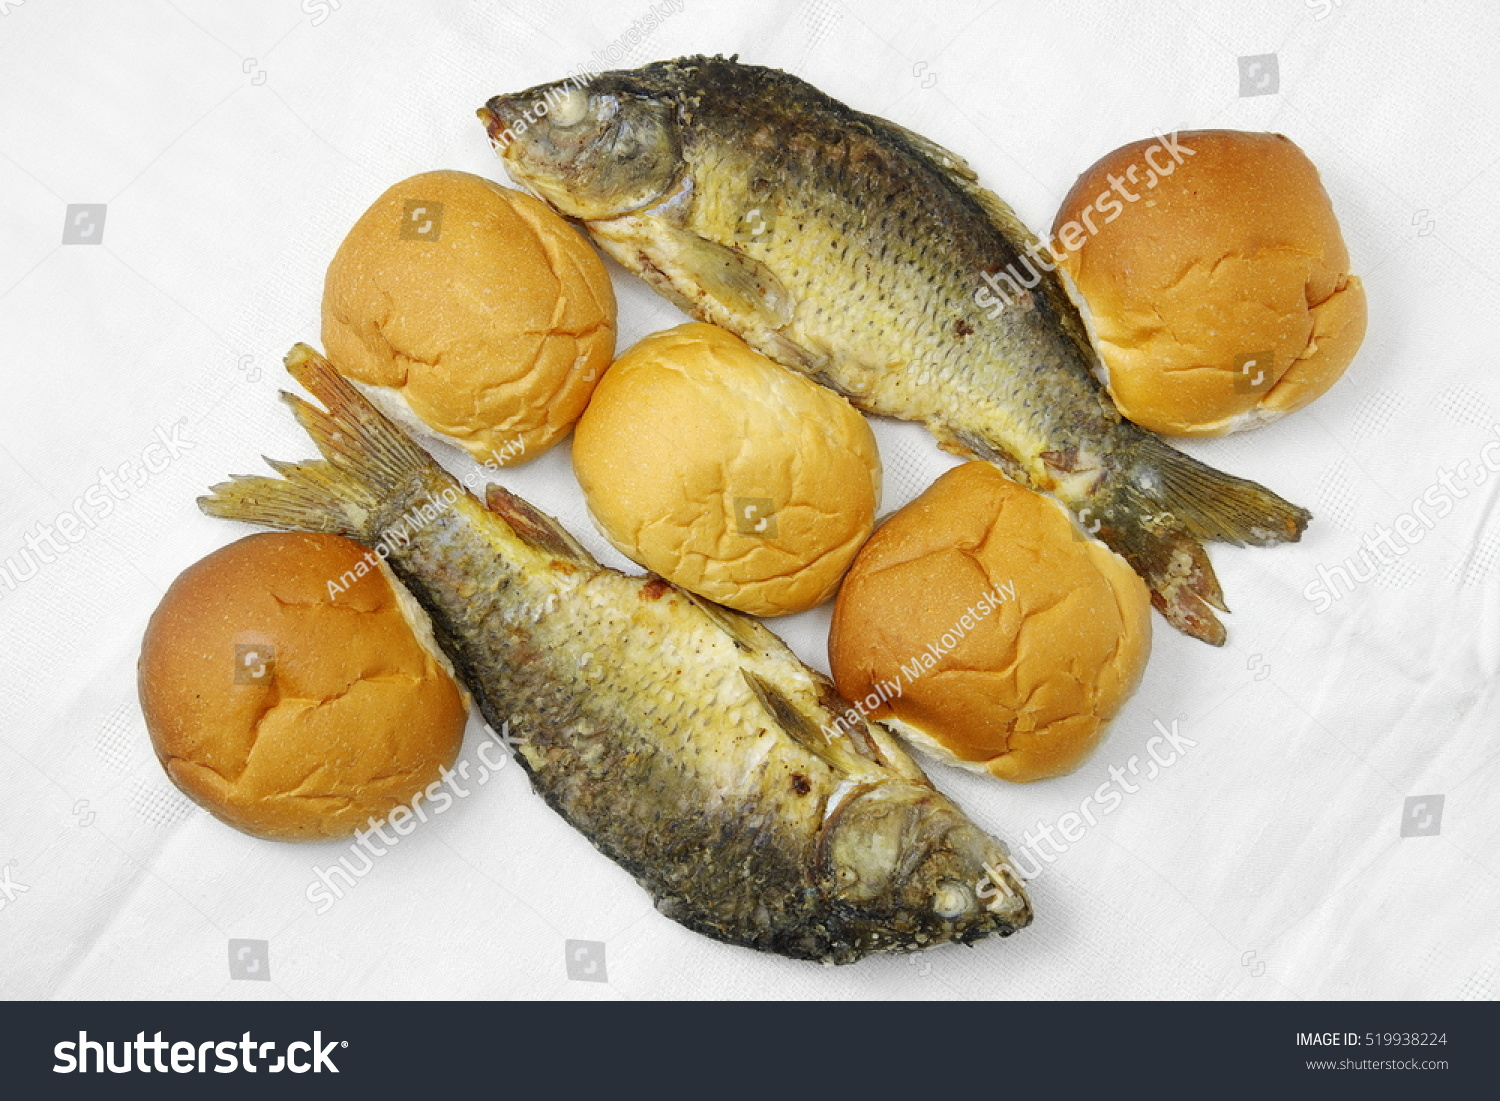 Five loaves two fishes stock photo 519938224 shutterstock for Five loaves two fish